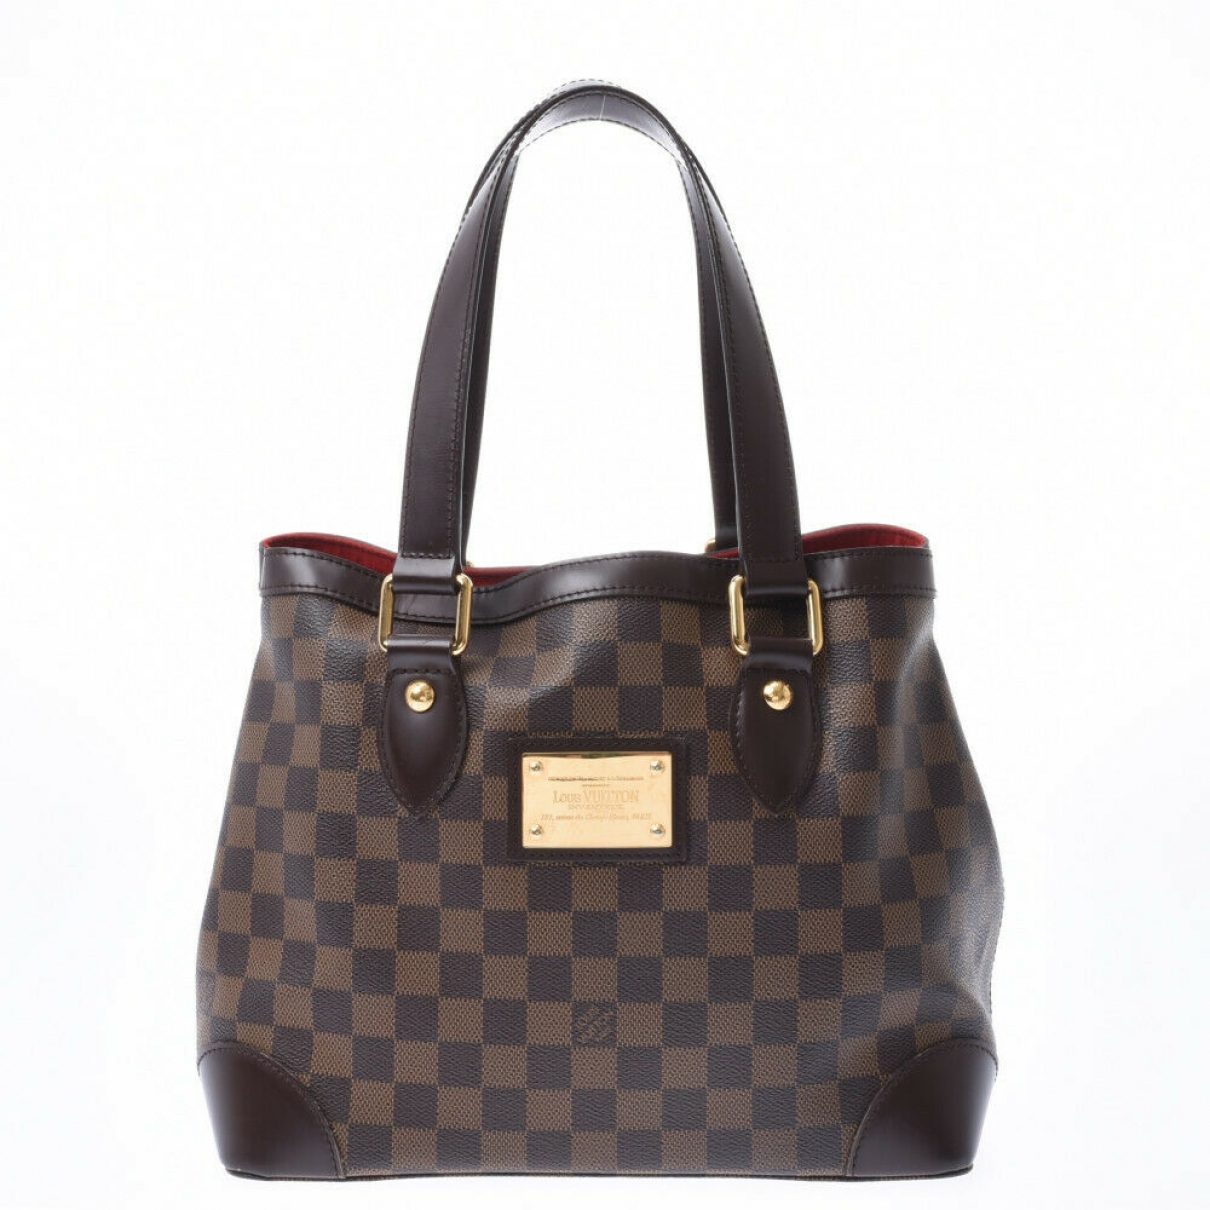 Louis Vuitton - Sac a main Hampstead pour femme en toile - marron